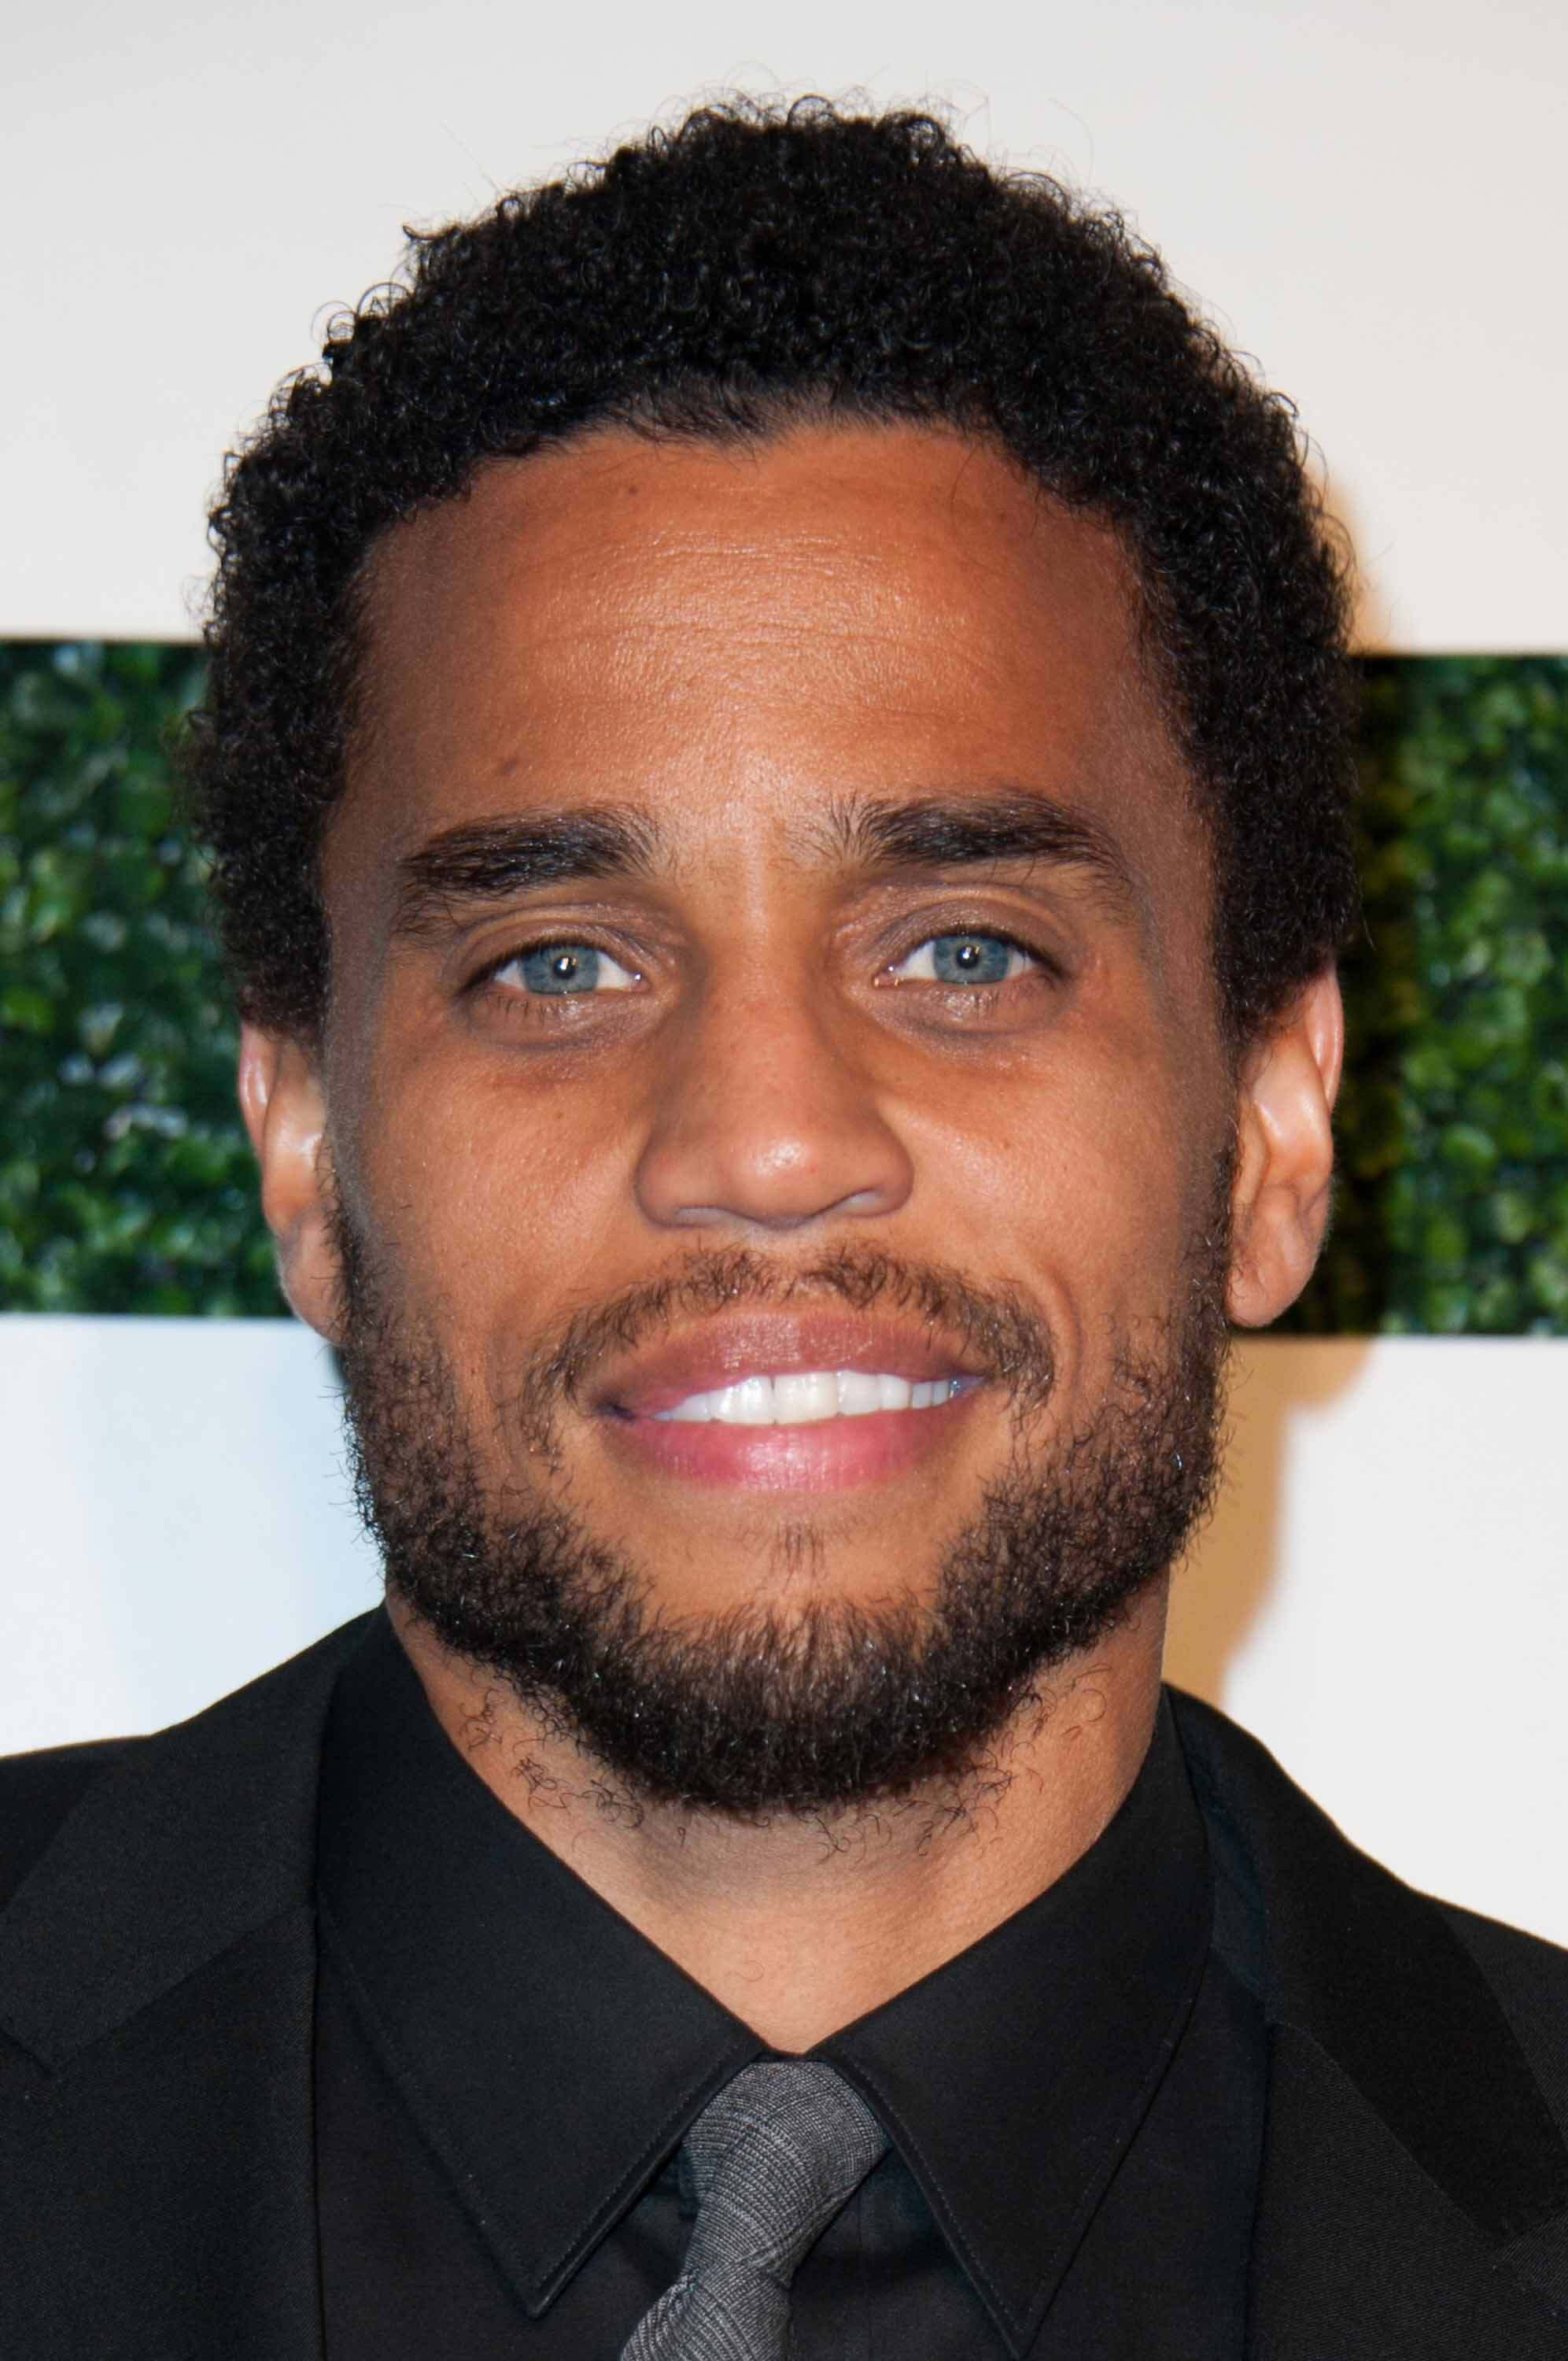 Curly hair: Men pulling it off - Michael Ealy. Credit: Getty Images